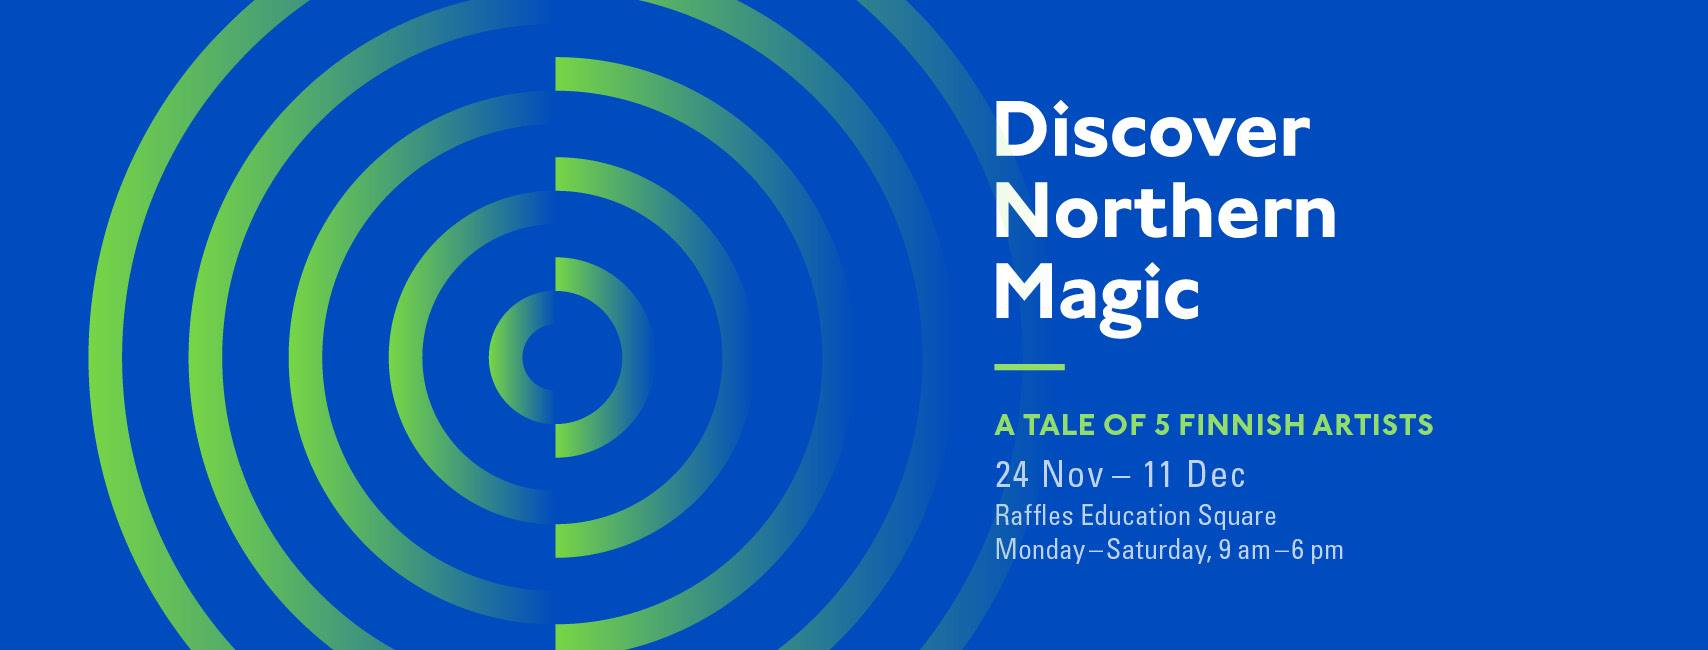 Discover Northern Magic